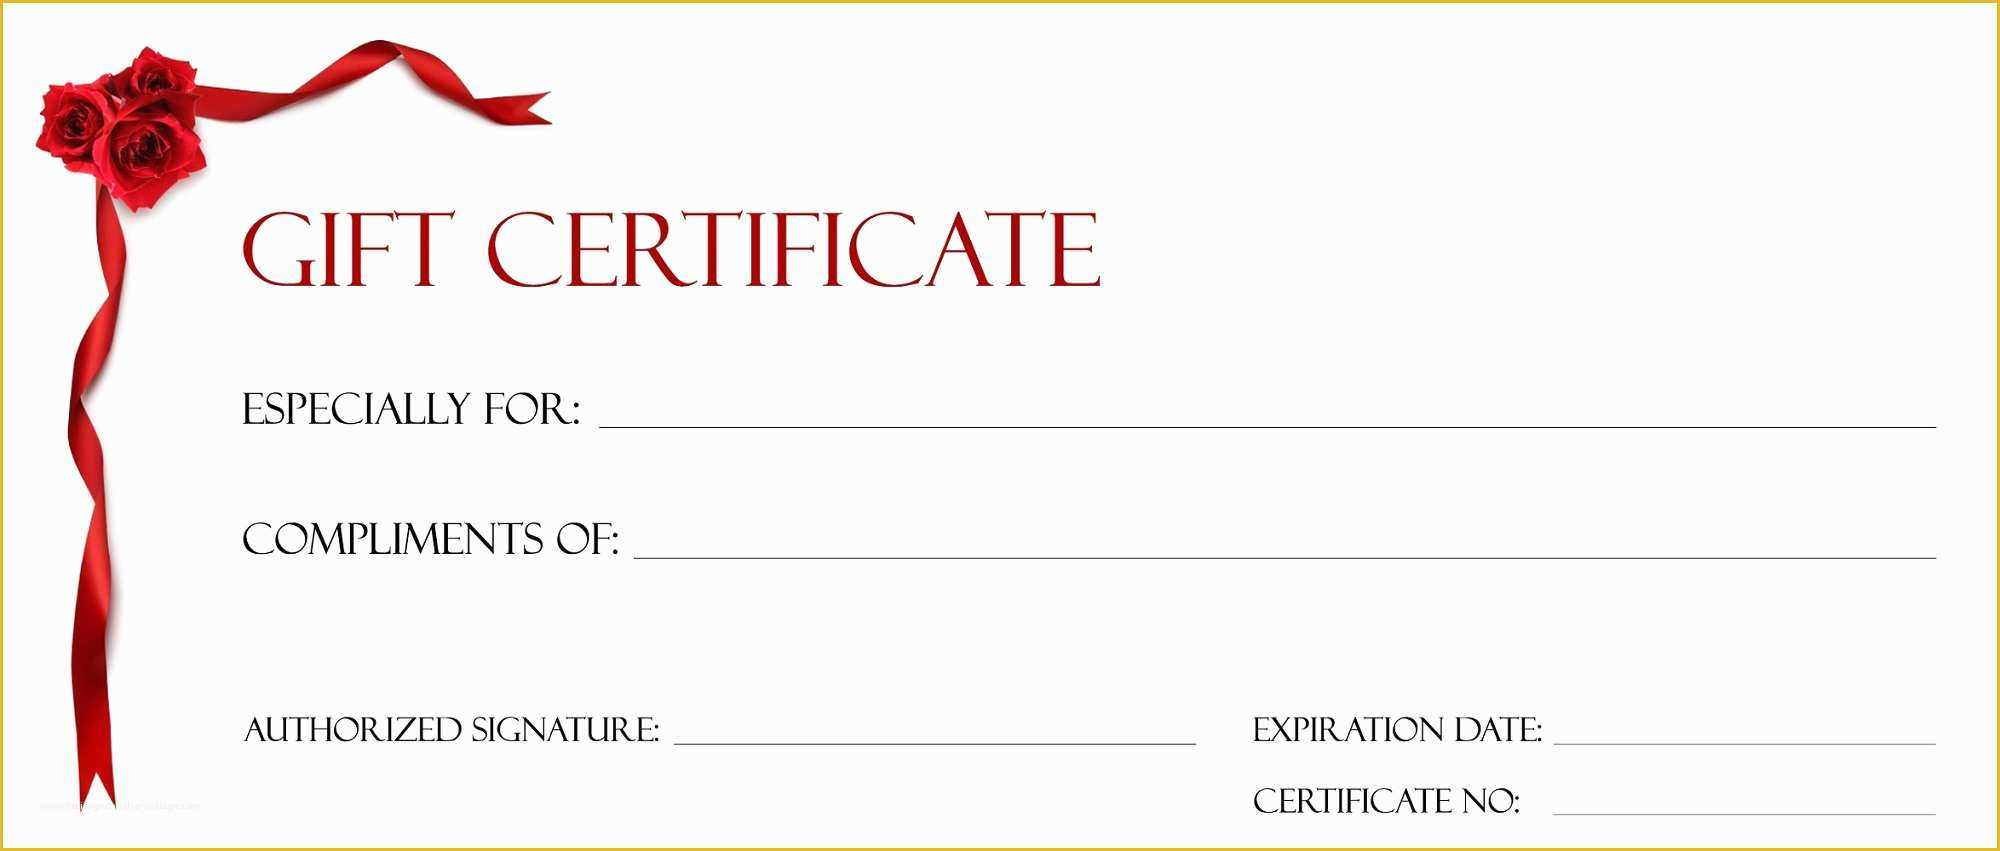 003 Gift Certificate Template Pages Free Printable Christmas With Certificate Template For Pages